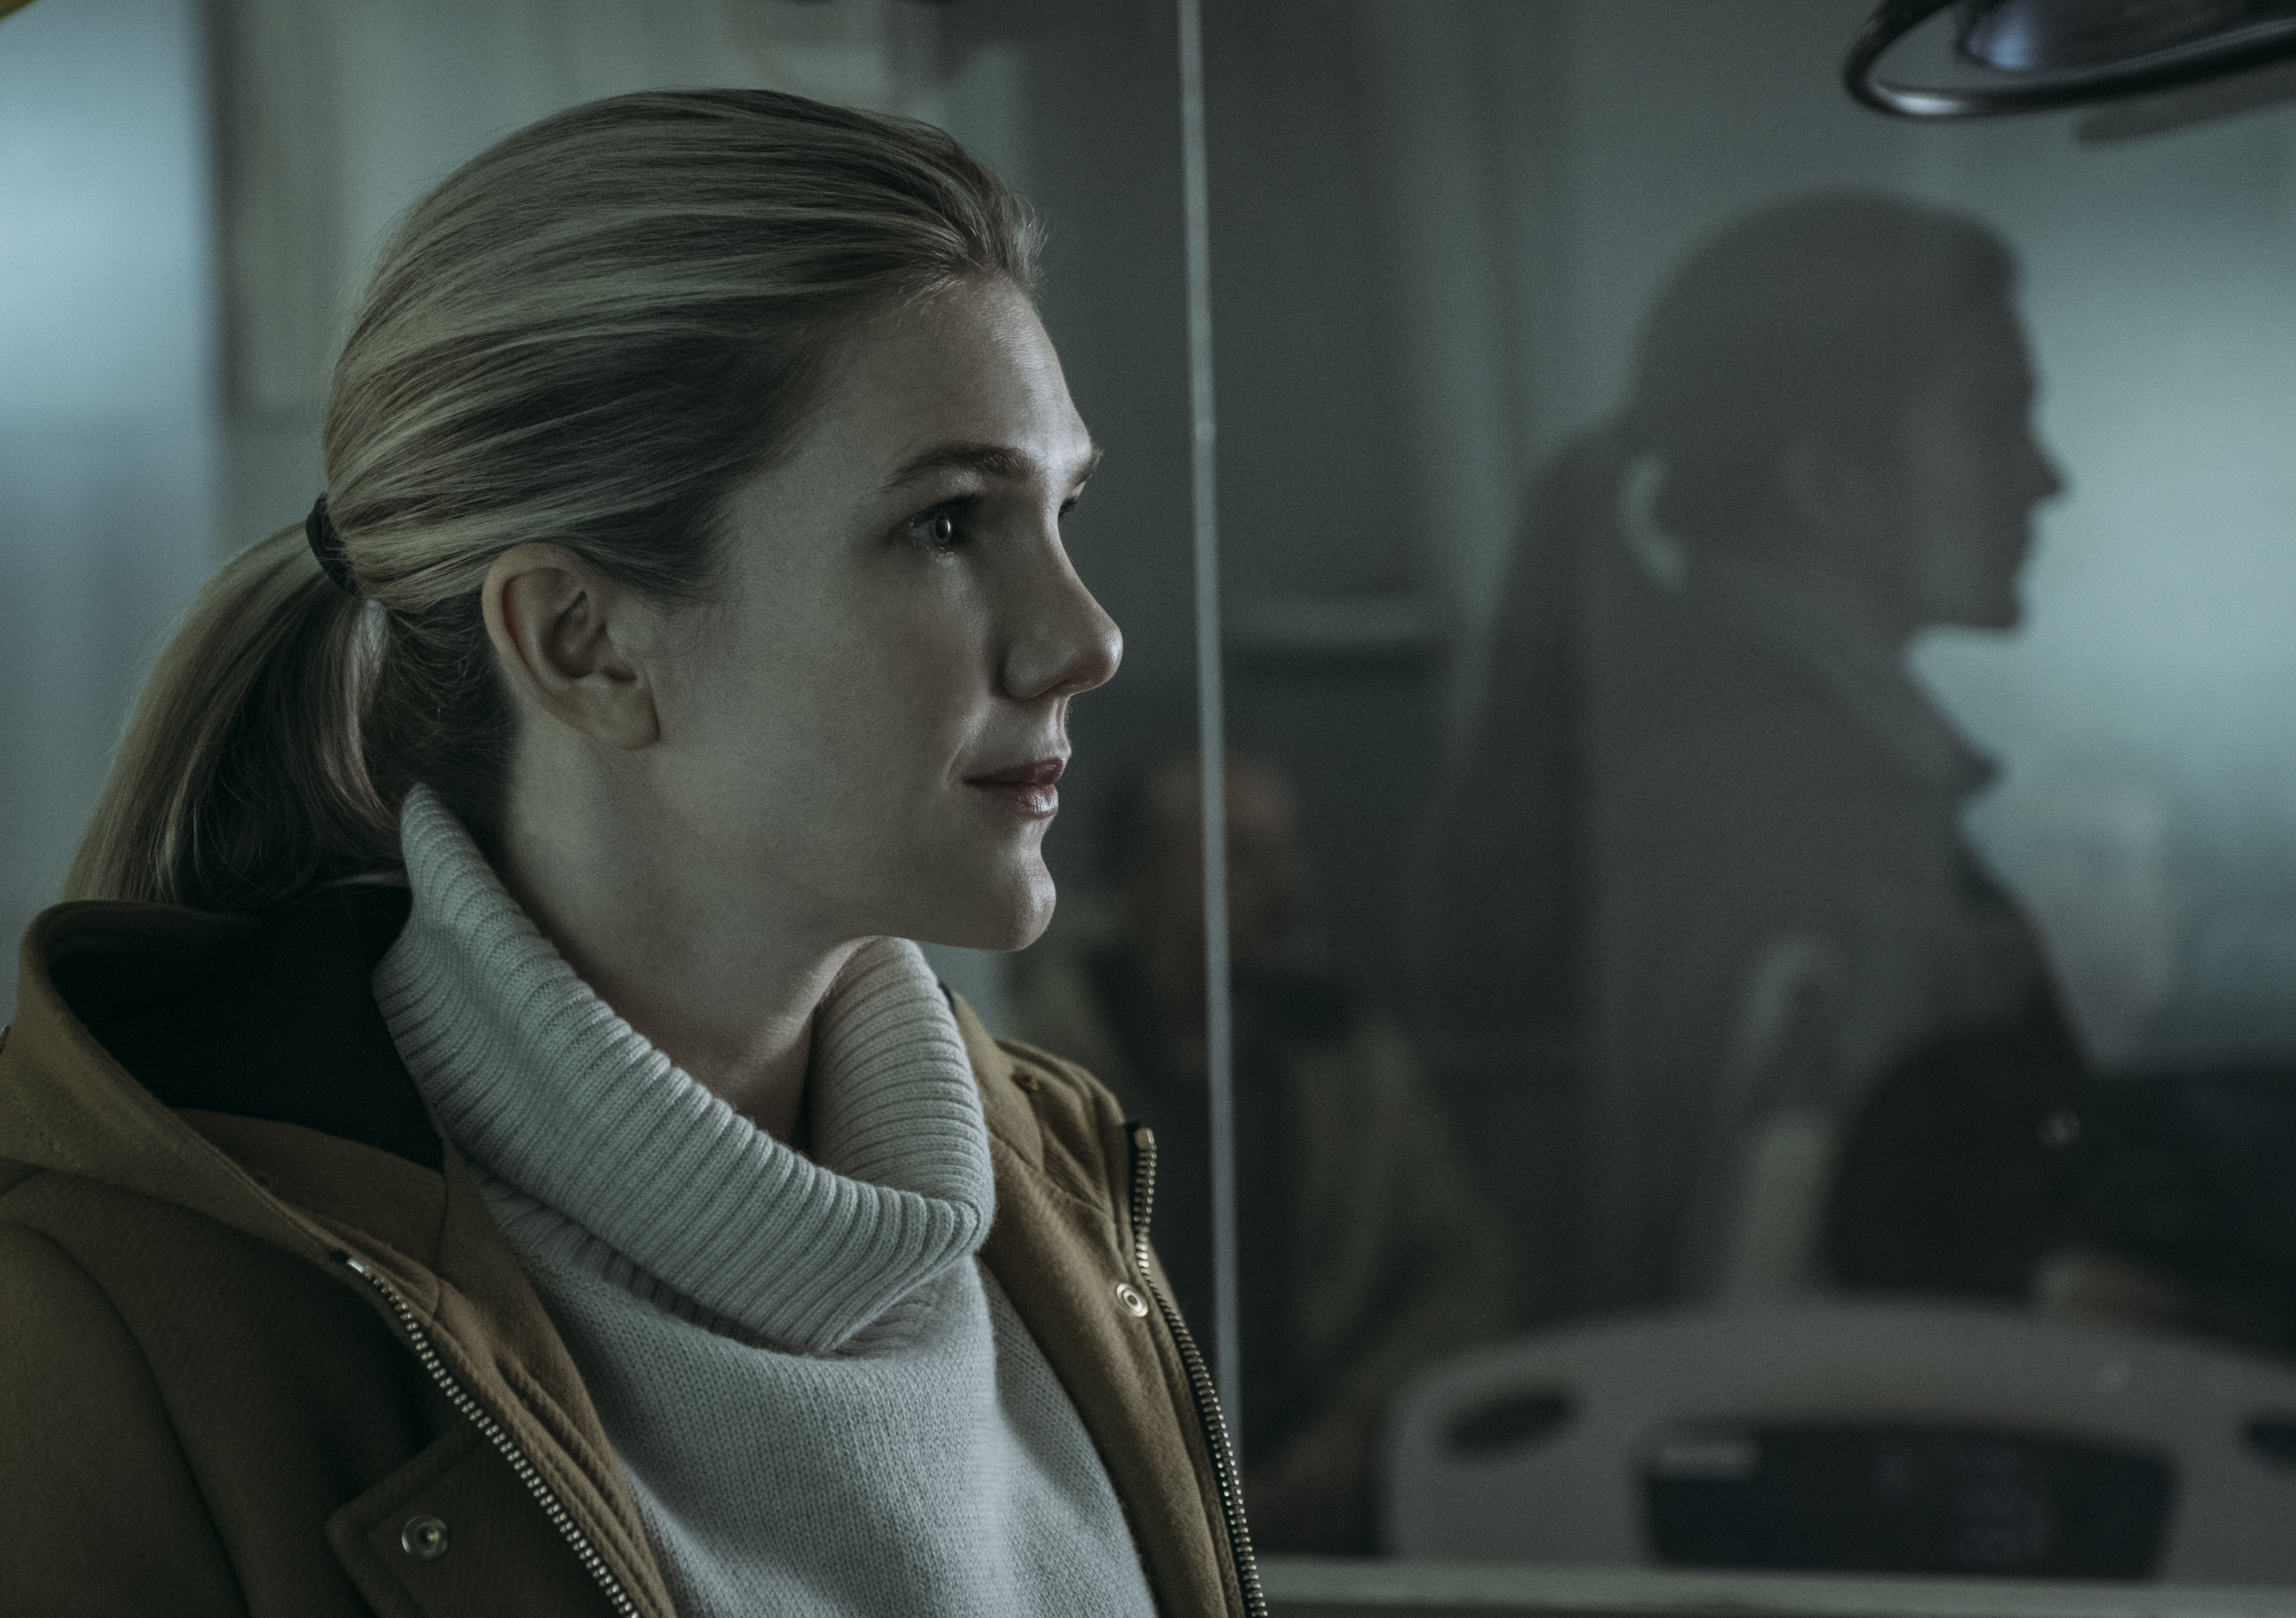 Fantastic Fest Interview: Actress Lily Rabe for FRACTURED